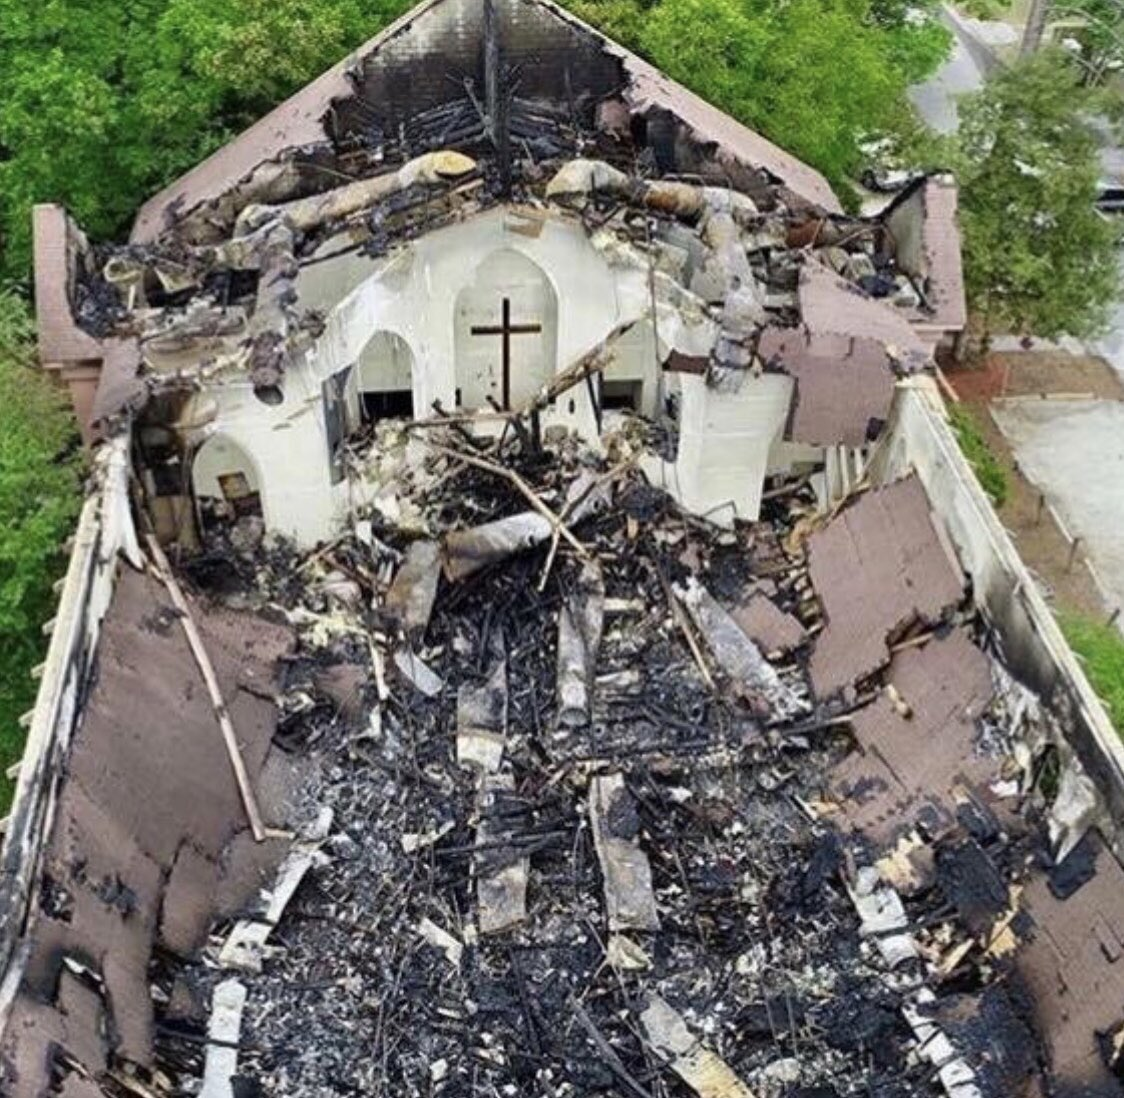 "My sister's beautiful church burned today. Look what remains!  The cross stands always and forever. The pastor says, ""The Lord promises to bring beauty out of ashes."" @FoxNews @foxandfriends"